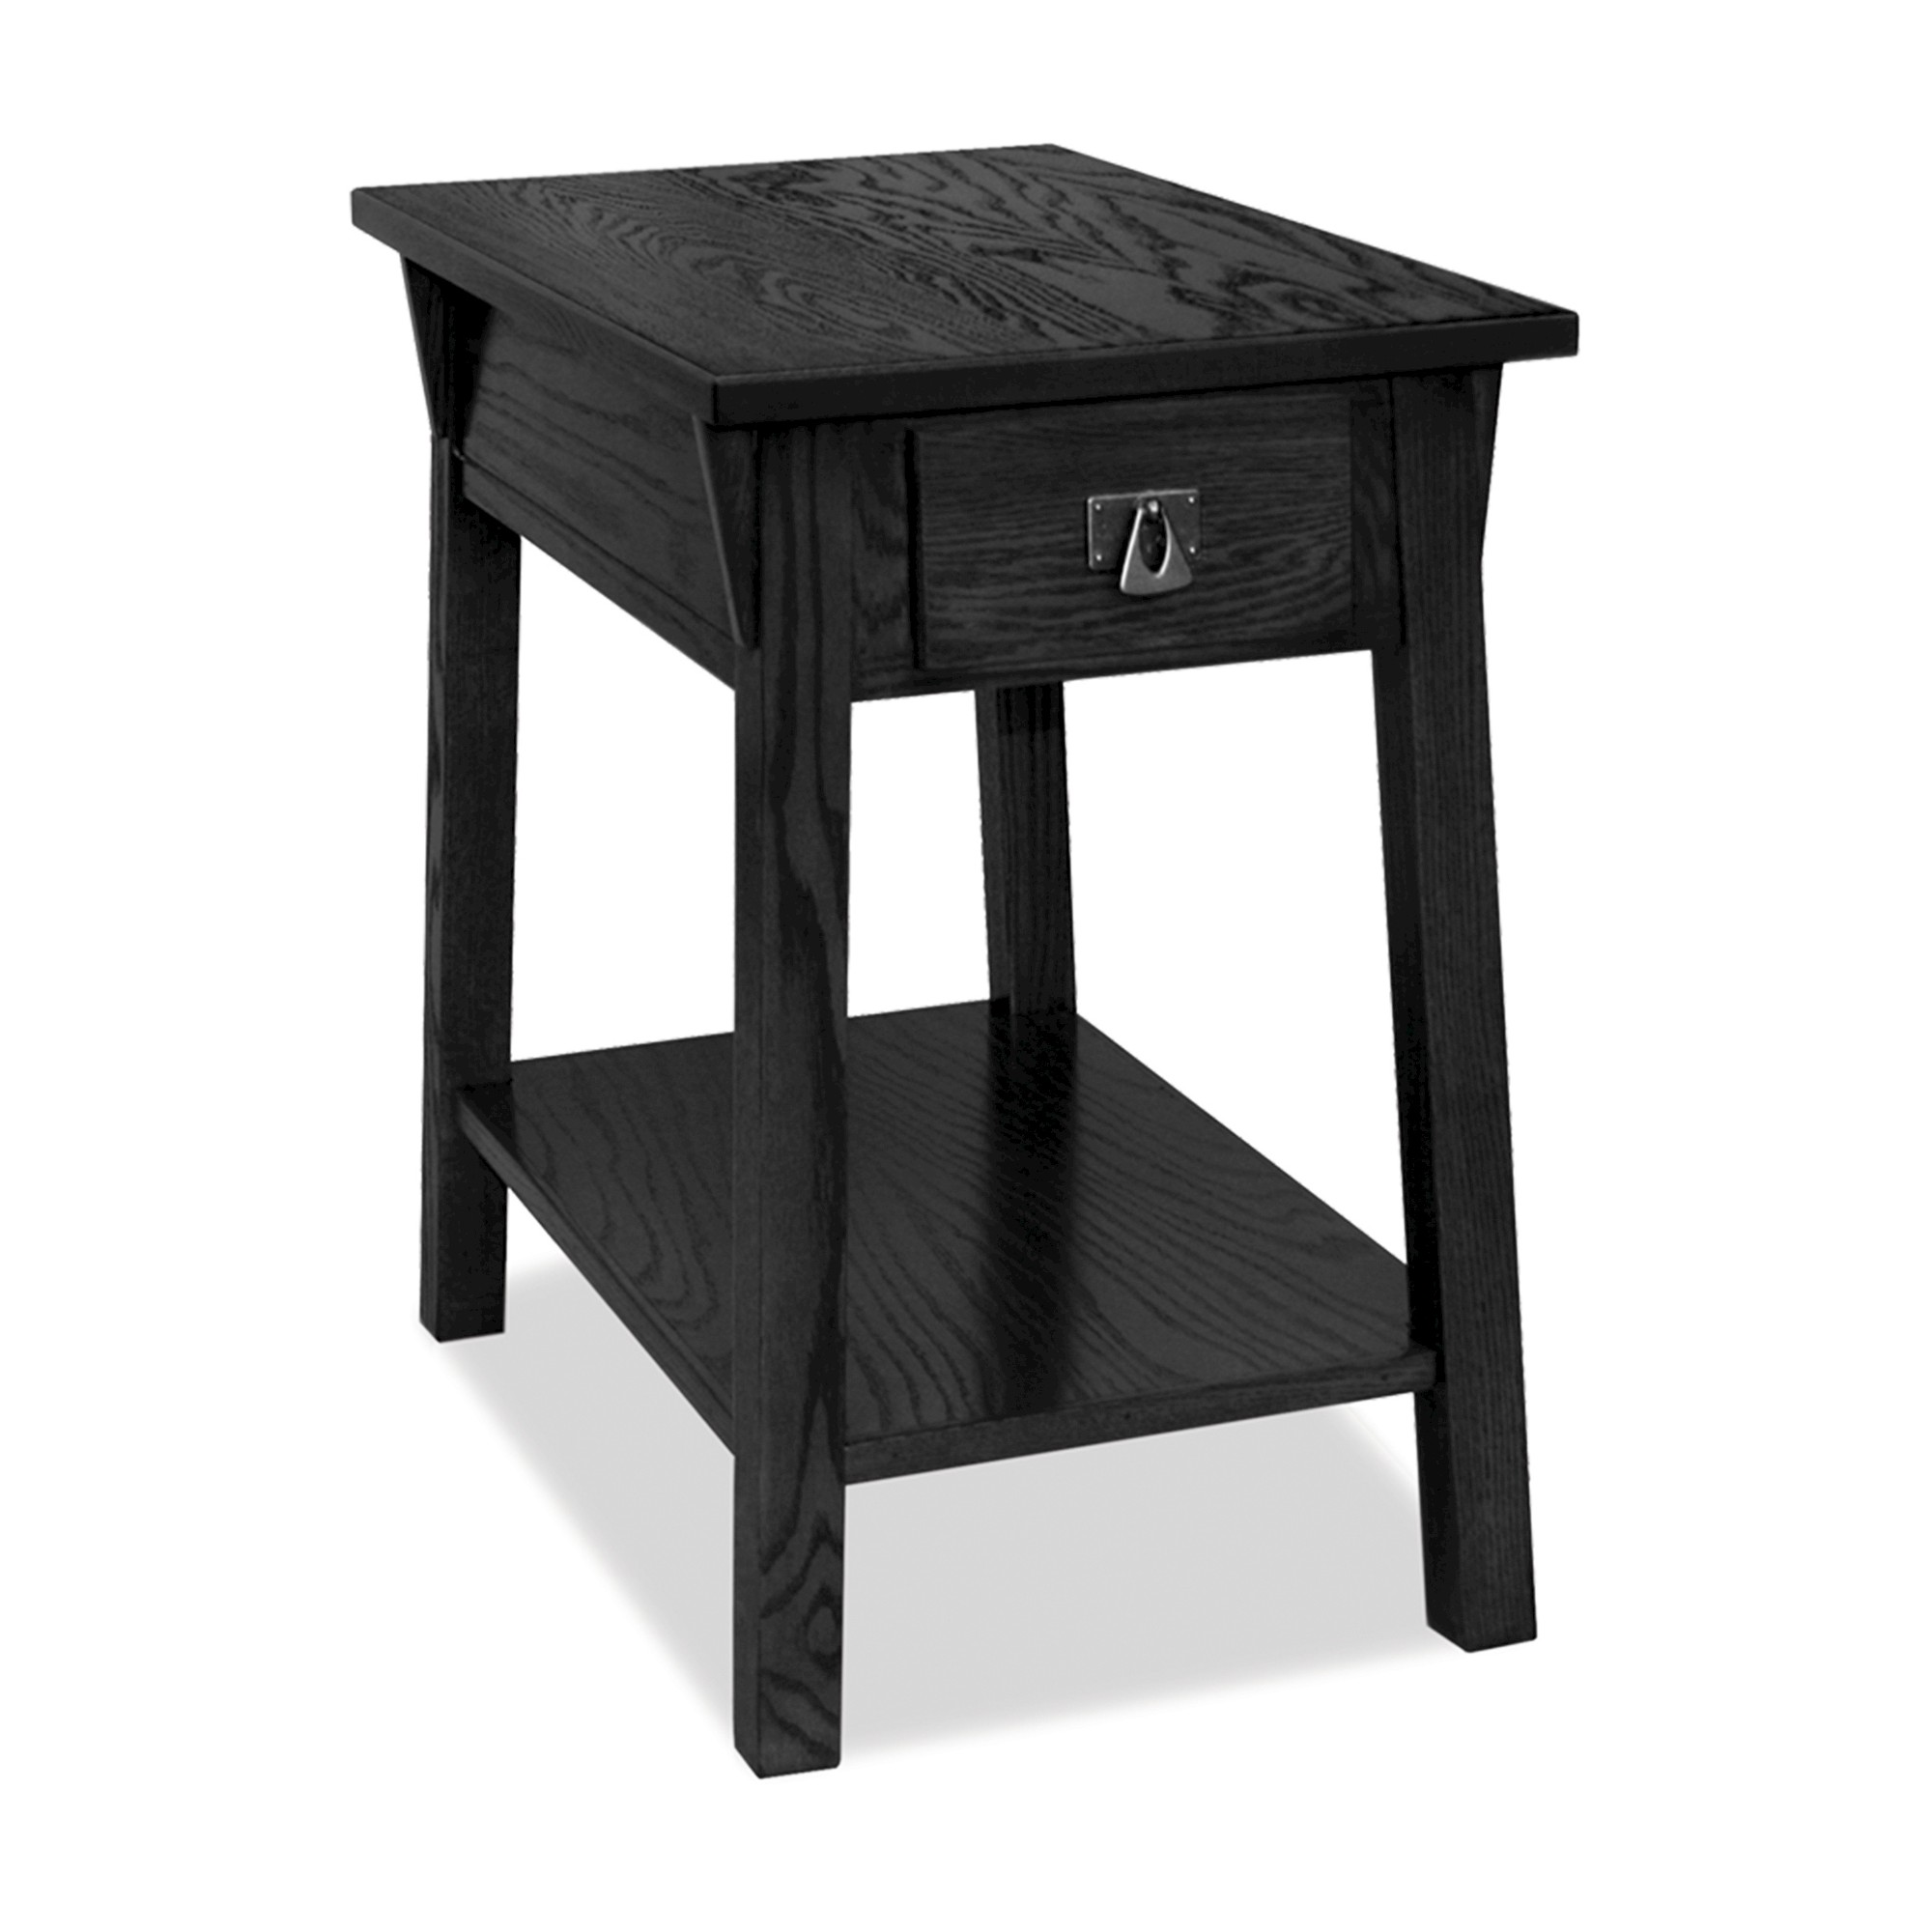 Favorite finds mission chairside table slate finish